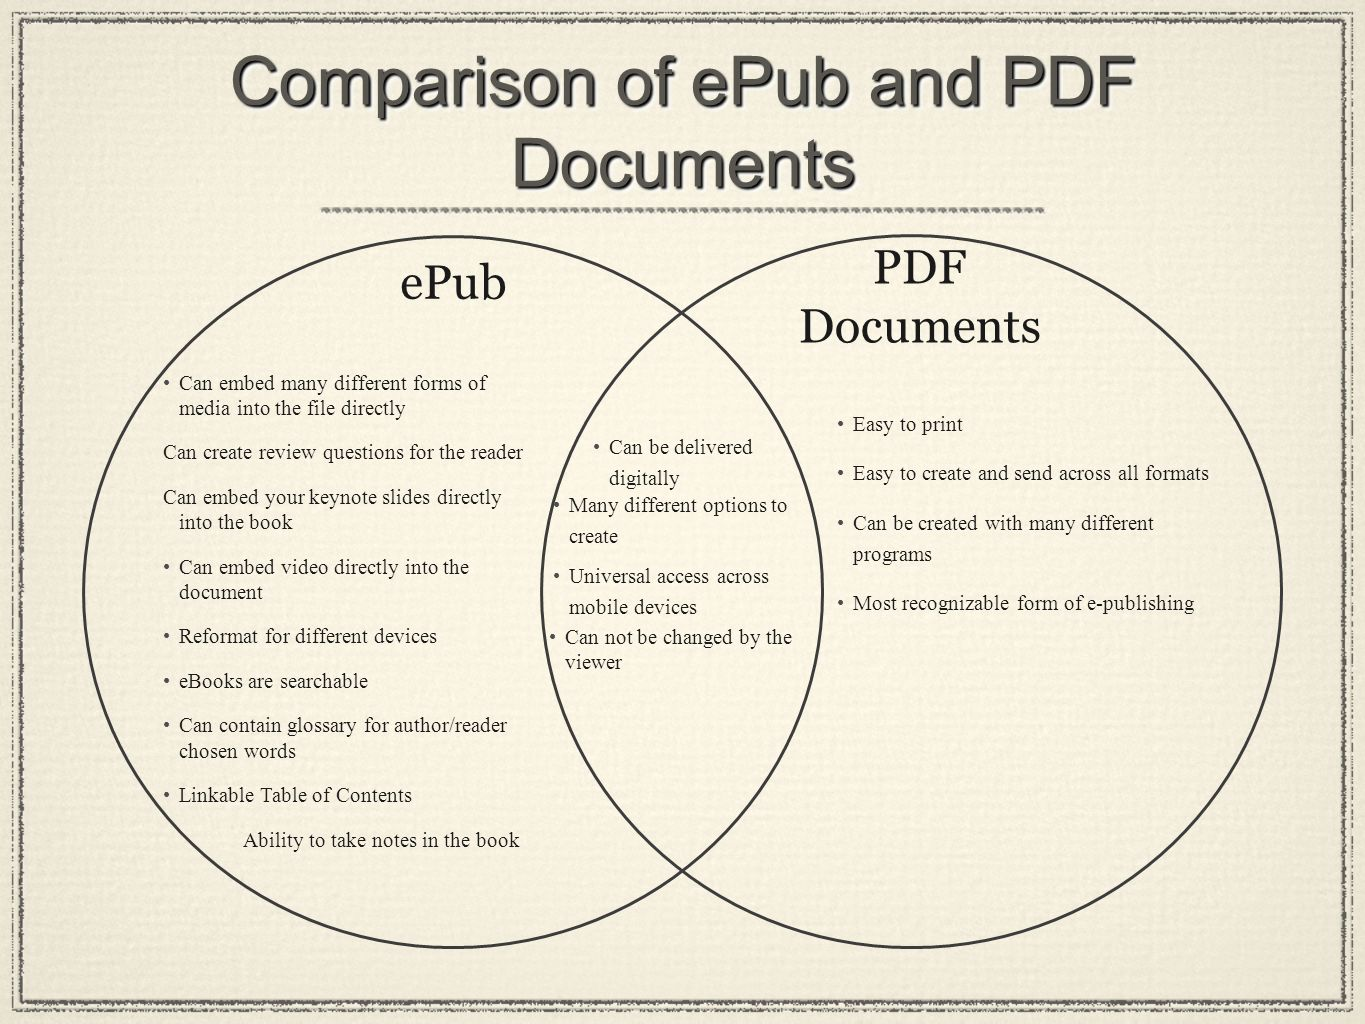 Comparison of ePub and PDF Documents ePub PDF Documents Can embed many different forms of media into the file directly Can create review questions for the reader Can embed your keynote slides directly into the book Can embed video directly into the document Reformat for different devices eBooks are searchable Can contain glossary for author/reader chosen words Linkable Table of Contents Ability to take notes in the book Many different options to create Easy to print Easy to create and send across all formats Can be created with many different programs Most recognizable form of e-publishing Can be delivered digitally Universal access across mobile devices Can not be changed by the viewer